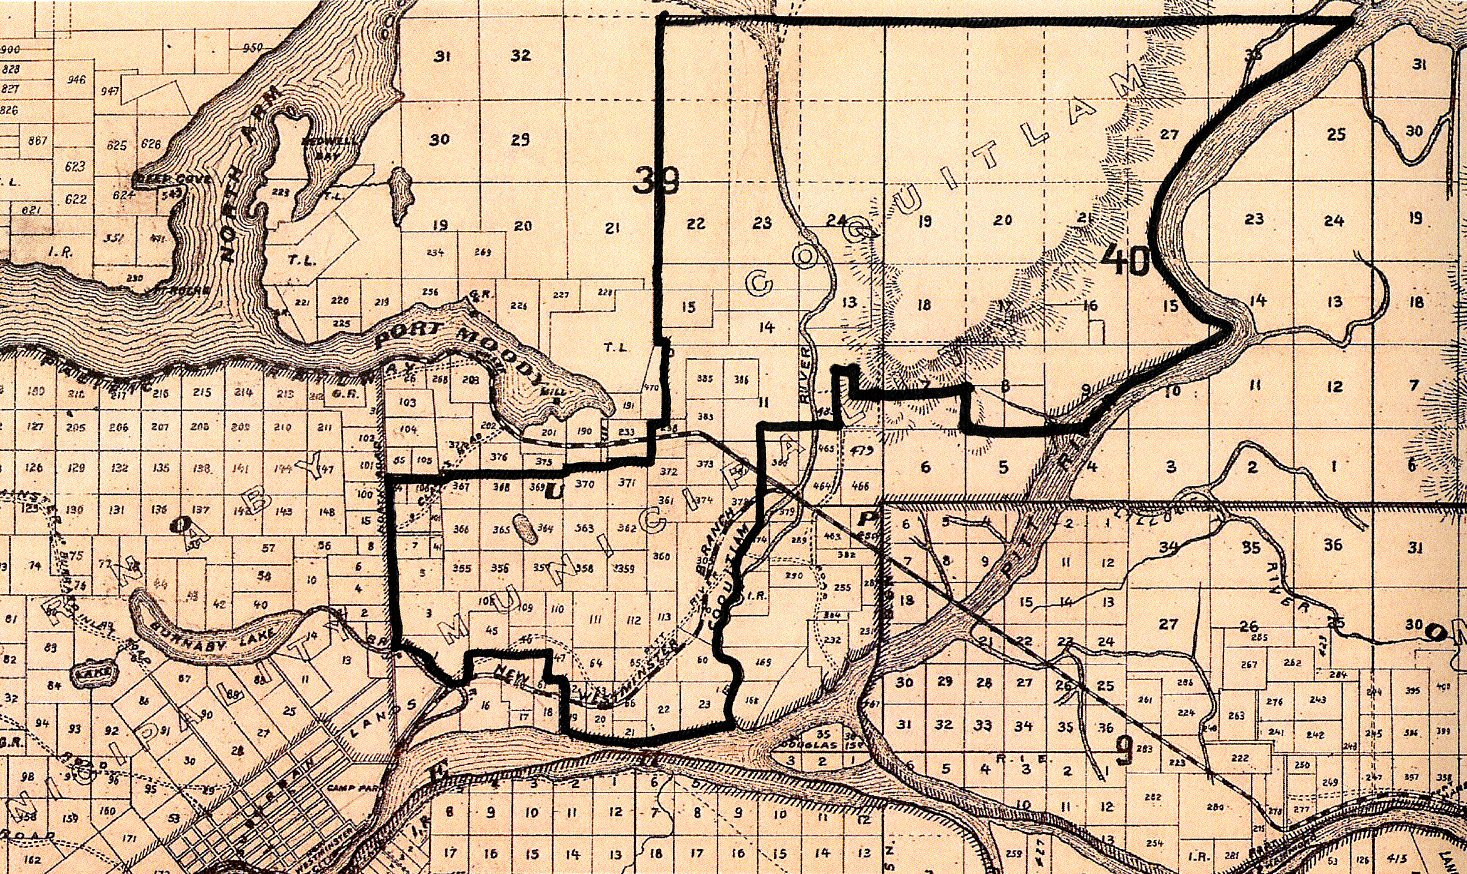 Coquitlam's 1913 Boundaries Drawn on a Map of New Westminster District from 1892 (JPG) Opens in new window